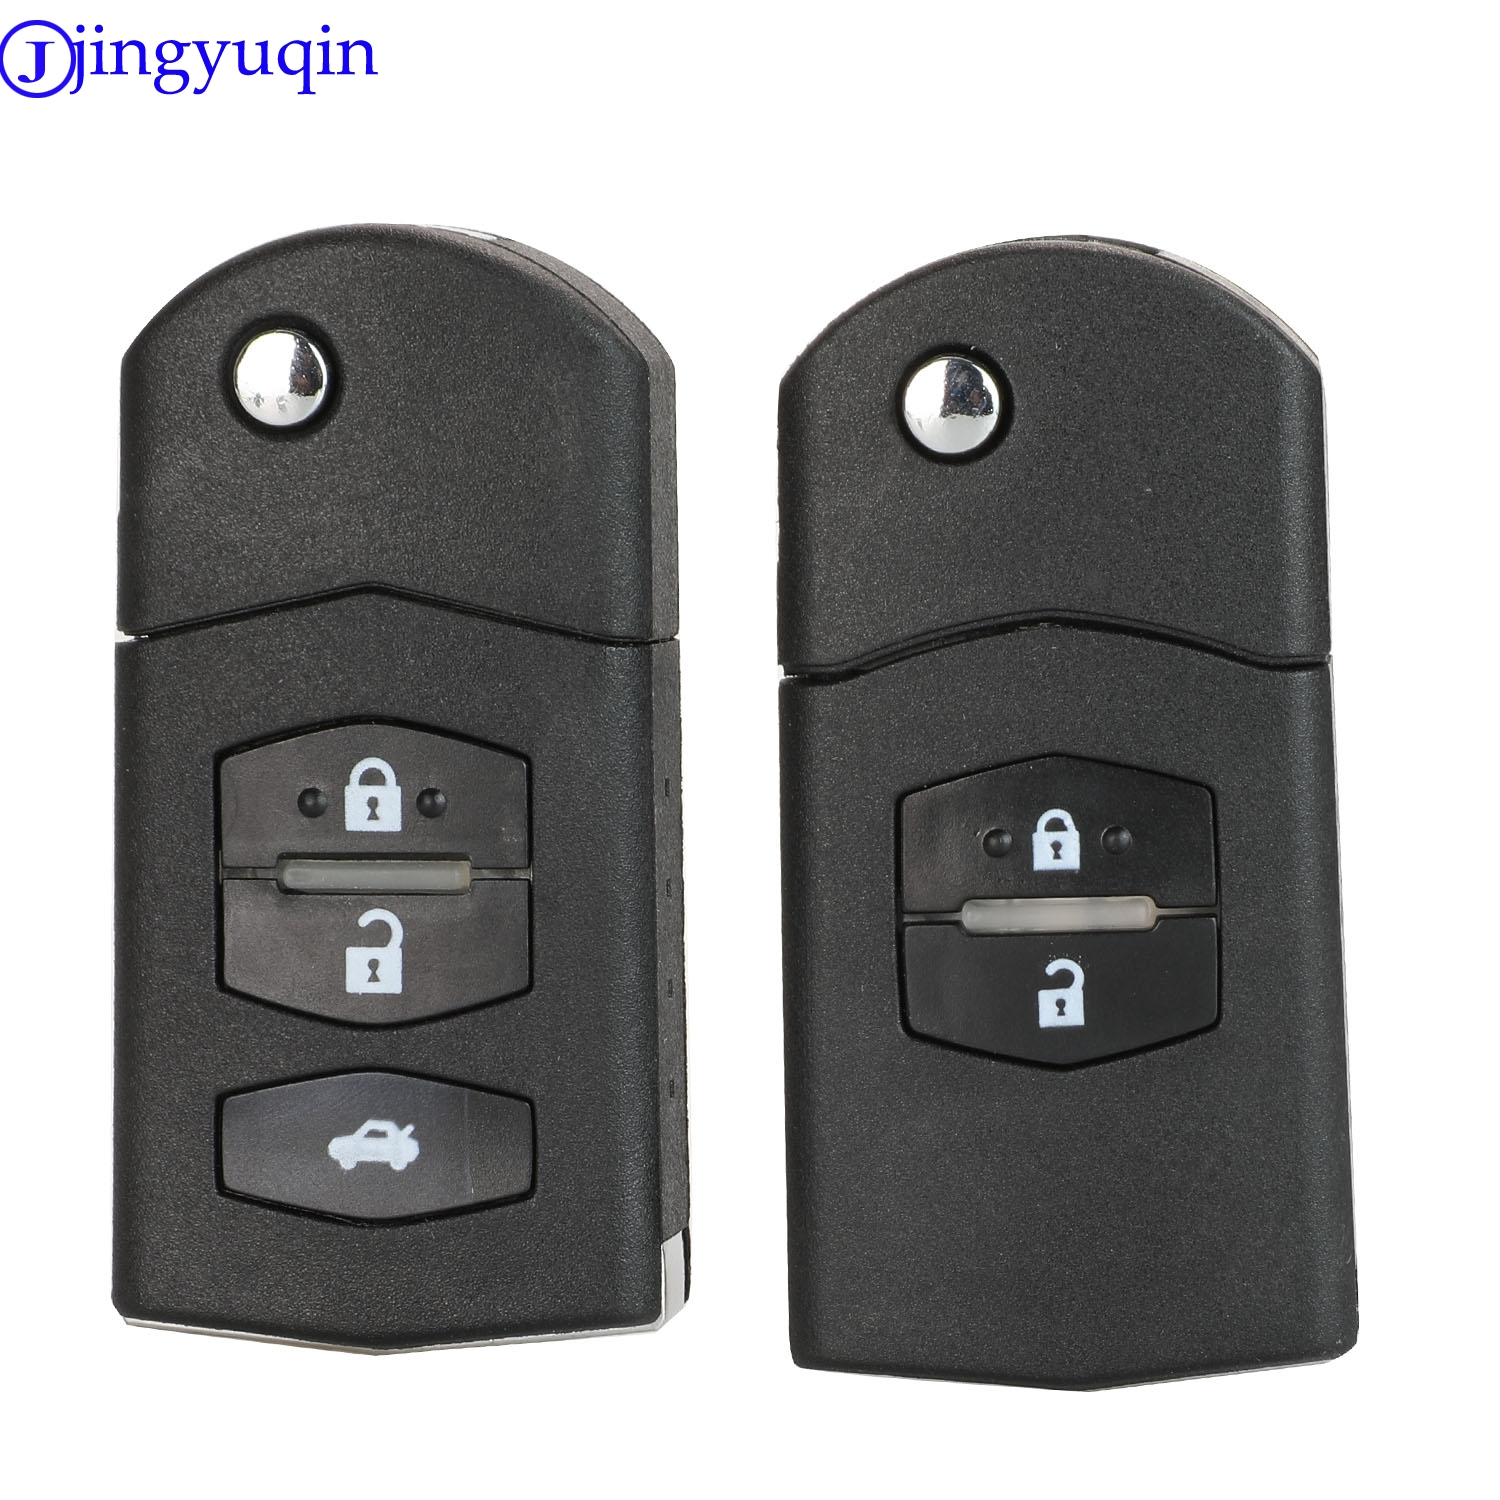 jingyuqin 2/3 Buttons Remote Folding Flip Car Key Fob Shell Cover Case For Mazda 3 5 6 Uncut Blade image